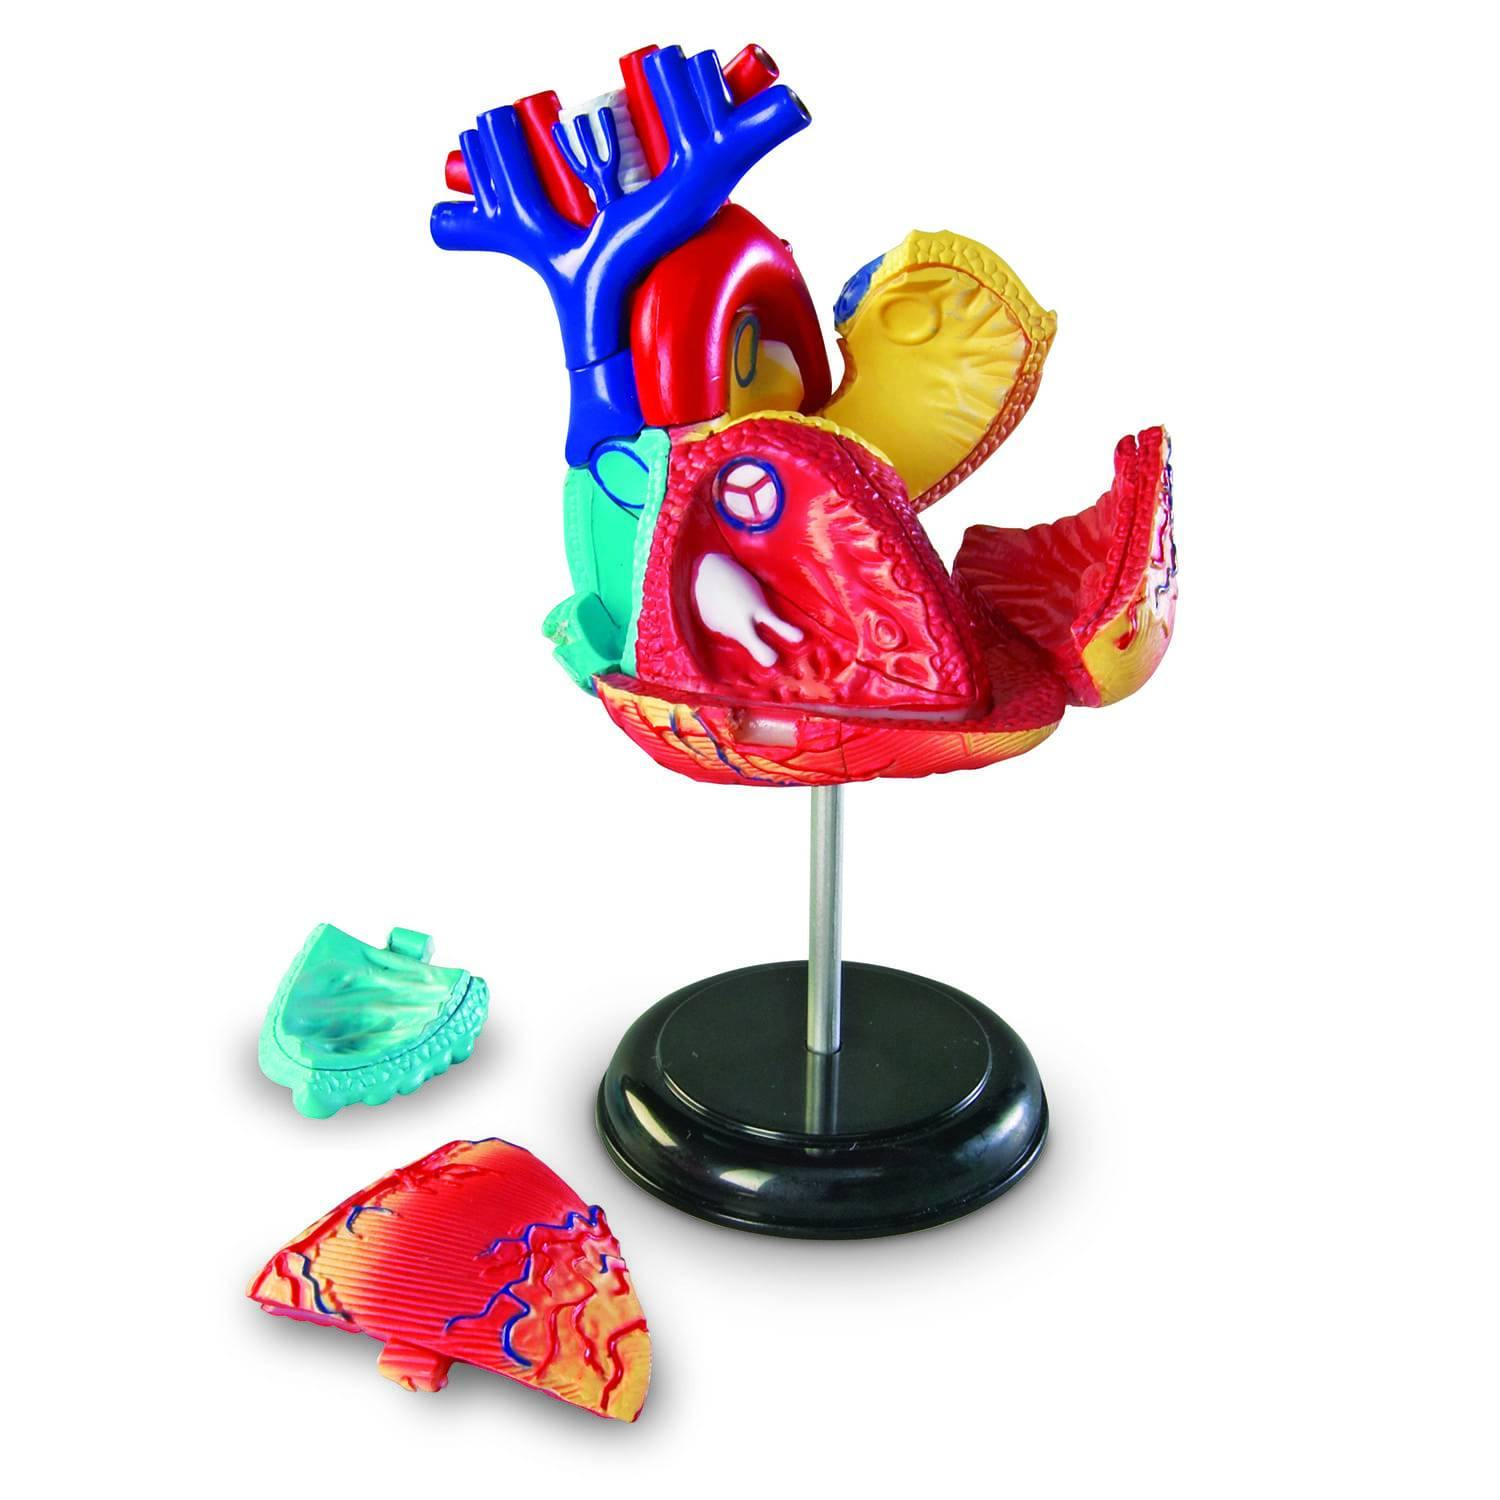 Heart Anatomy Model Kit 2